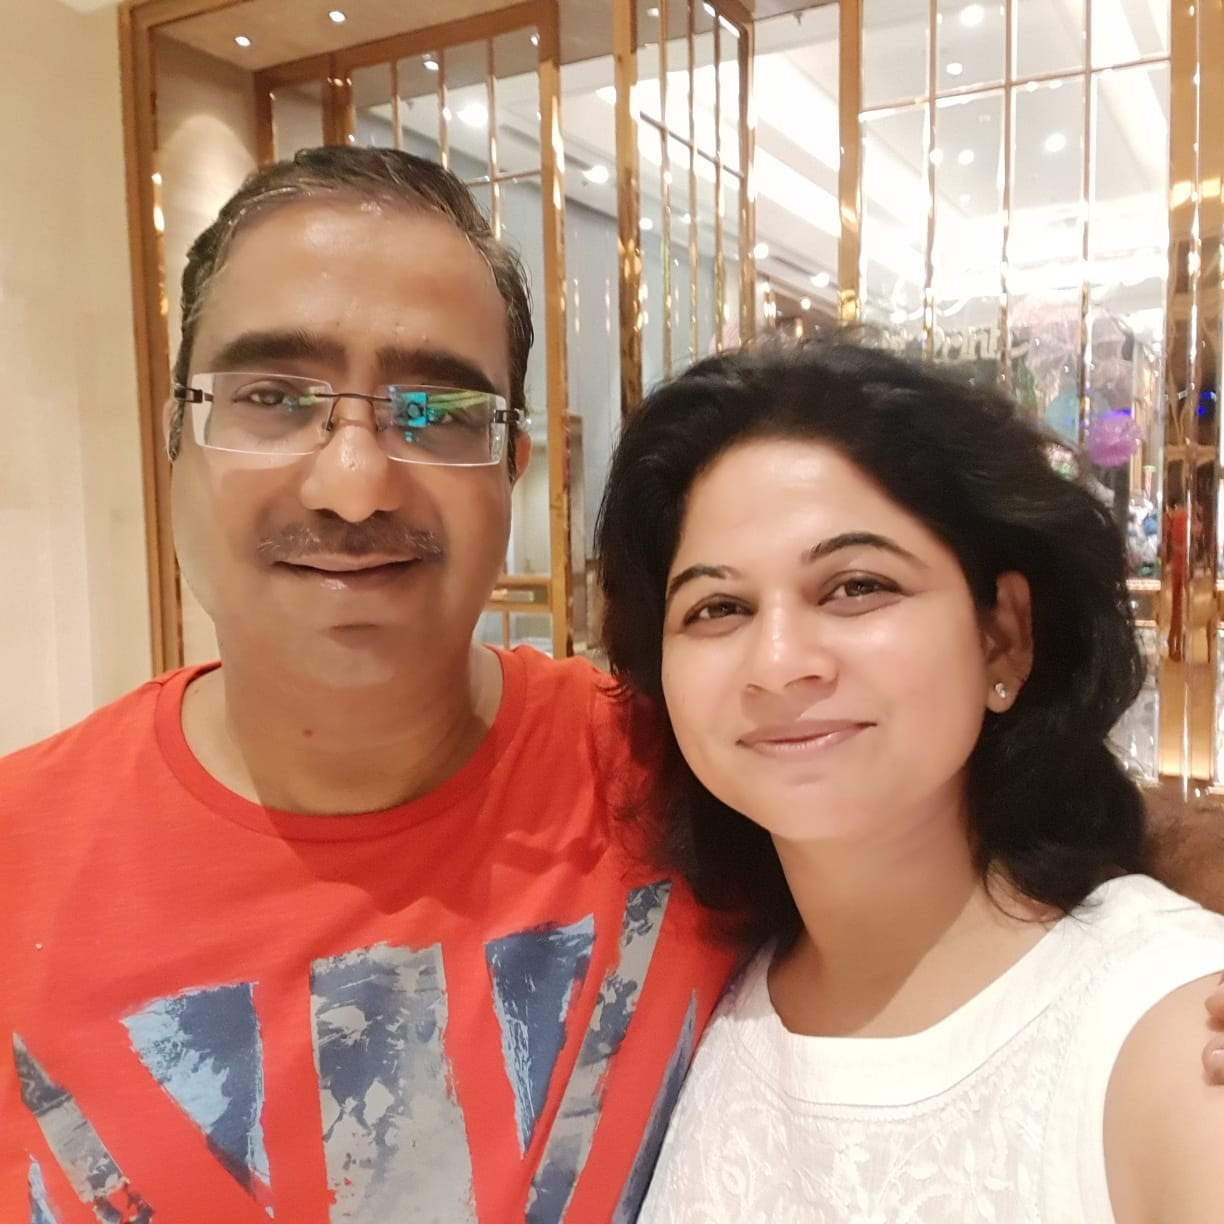 indian couple Indian doctor dr priyanka jha IIT BIhta Dr Anil Kumar jha Corporate hospital patna bihar covid doctors at frontline corona pandemic patient covid warriors family covid stigmas neuro physician fight Covid